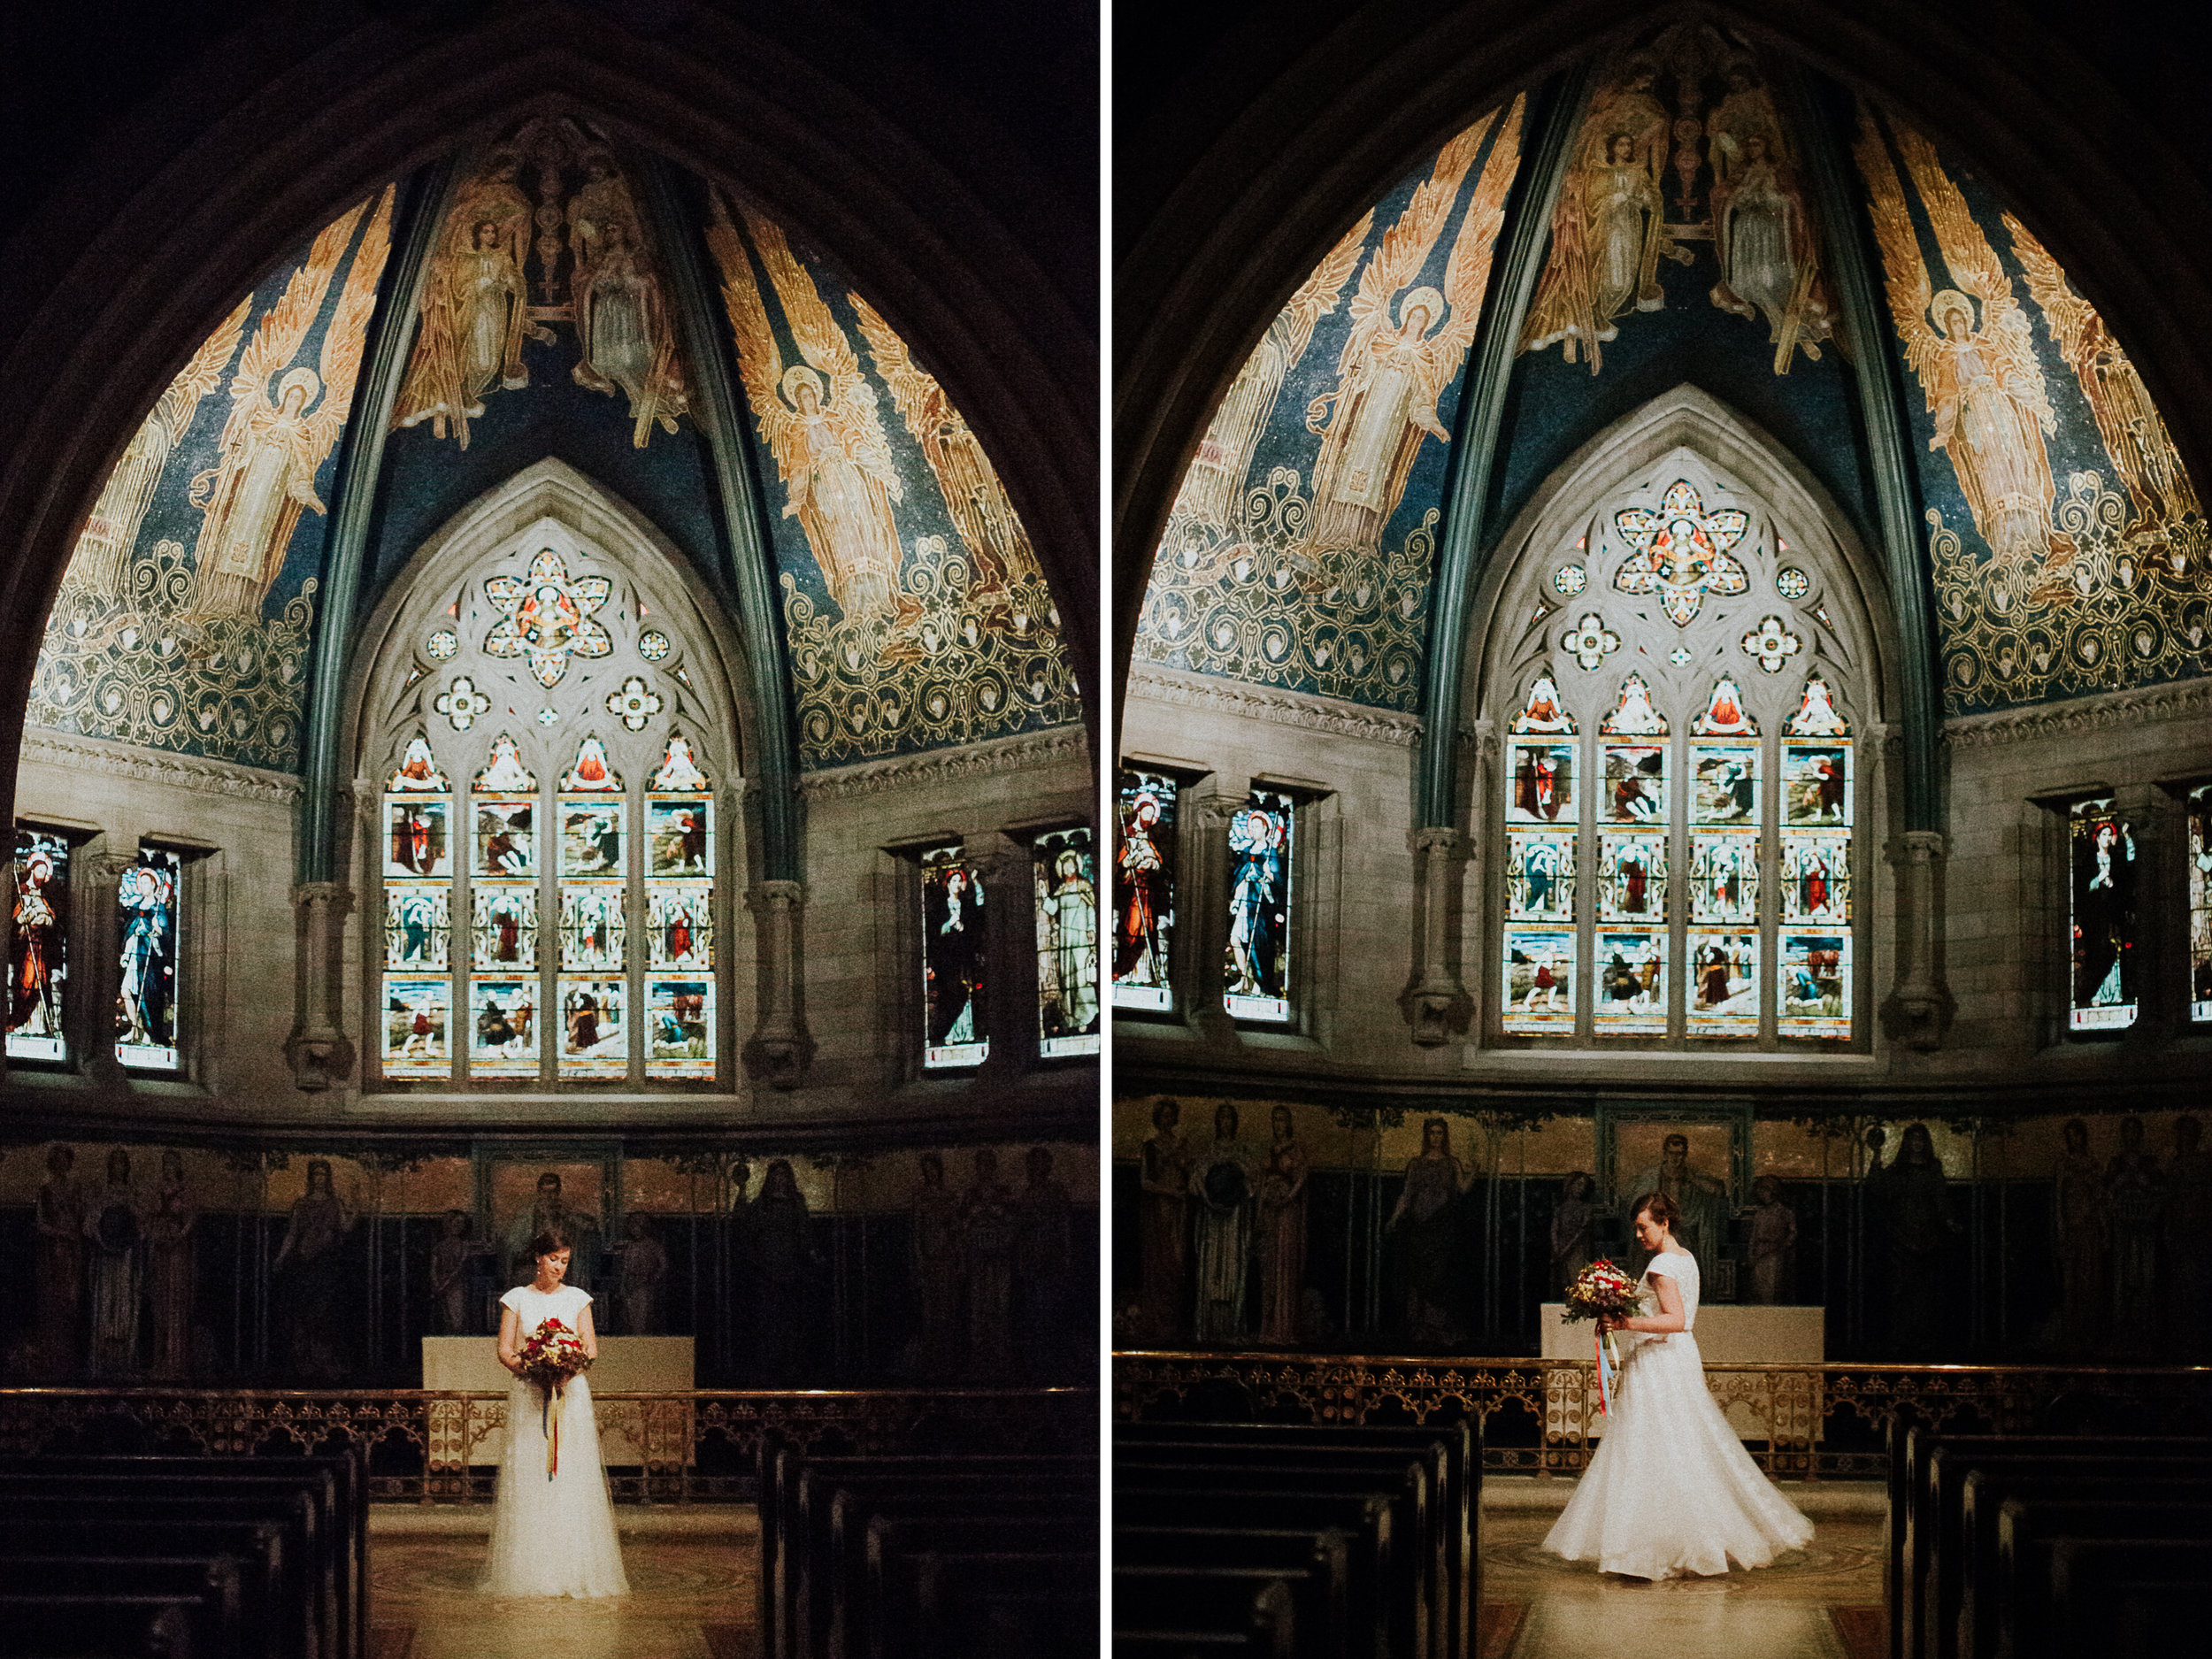 Sage_Chapel_New_York_Wedding_Jane_Ashwin-1.jpg